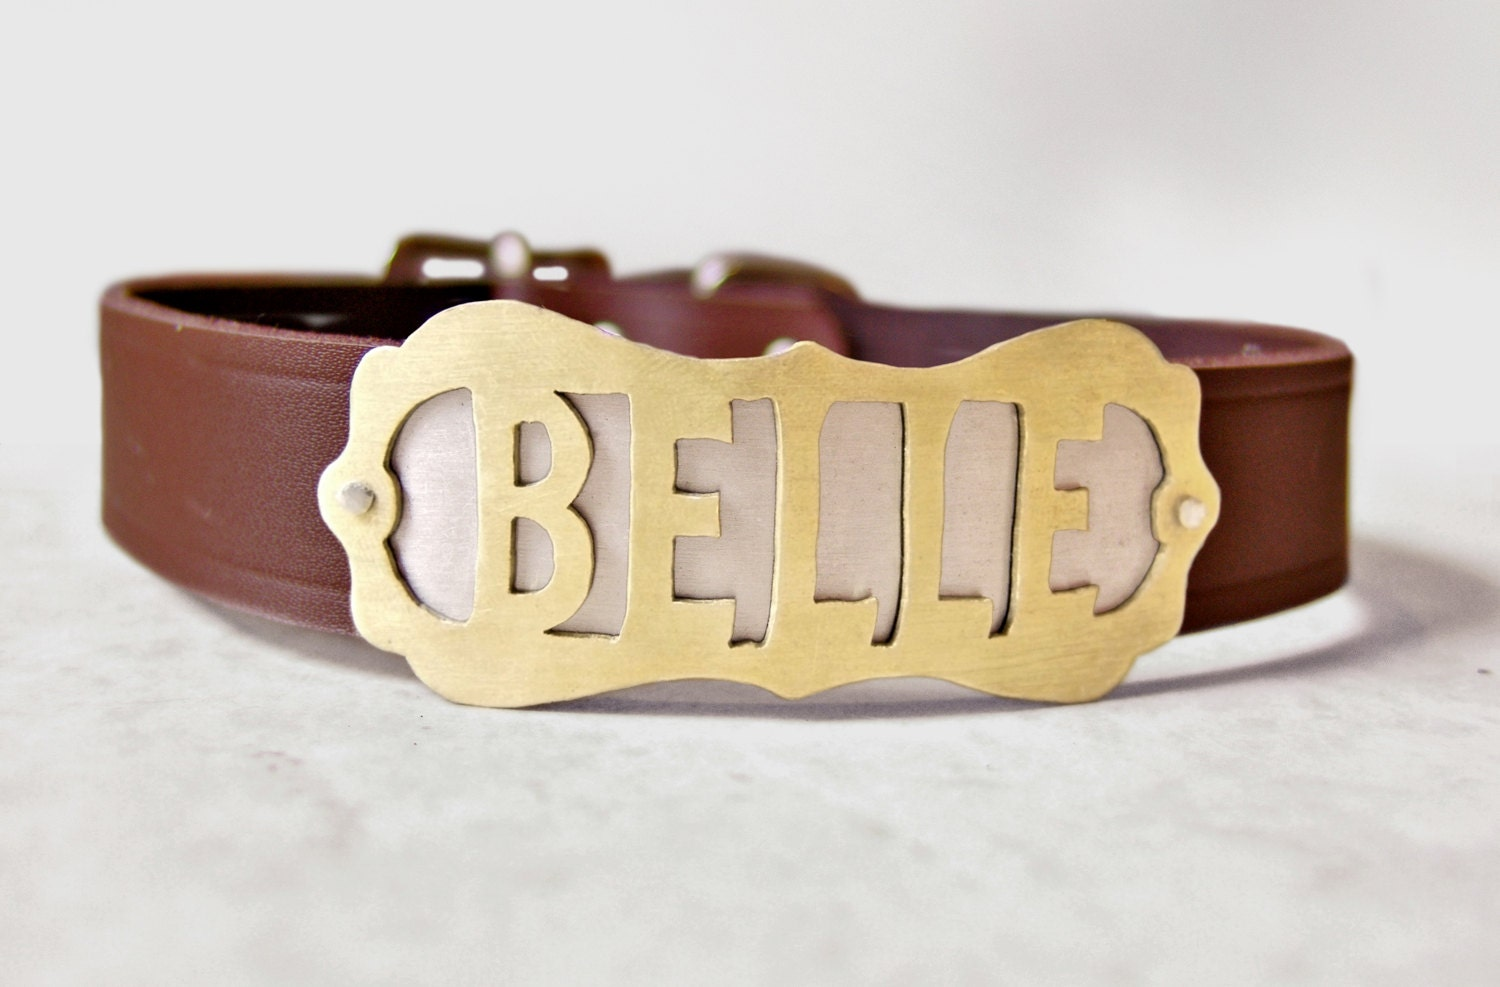 Items similar to Custom Name Plate on Leather Collar